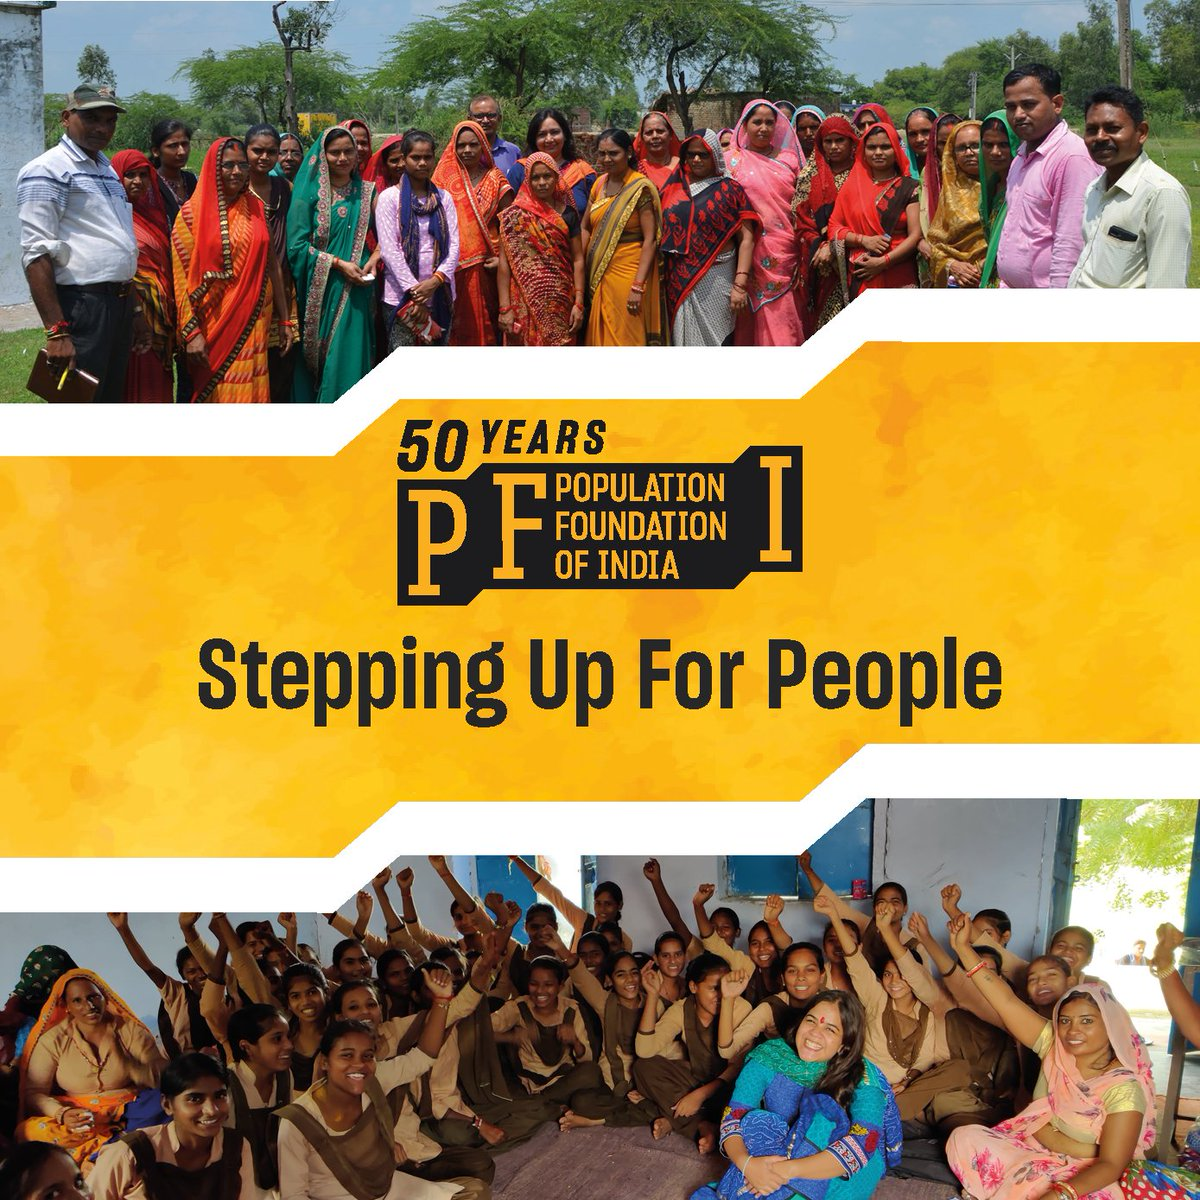 Proud to share, Population Foundation of India has turned 50 years. It could not have been possible without the amazing contribution of our partners & our entire team of PFI. Here's to achieving many more milestones together and stepping up for people. #SteppingUpForPeople